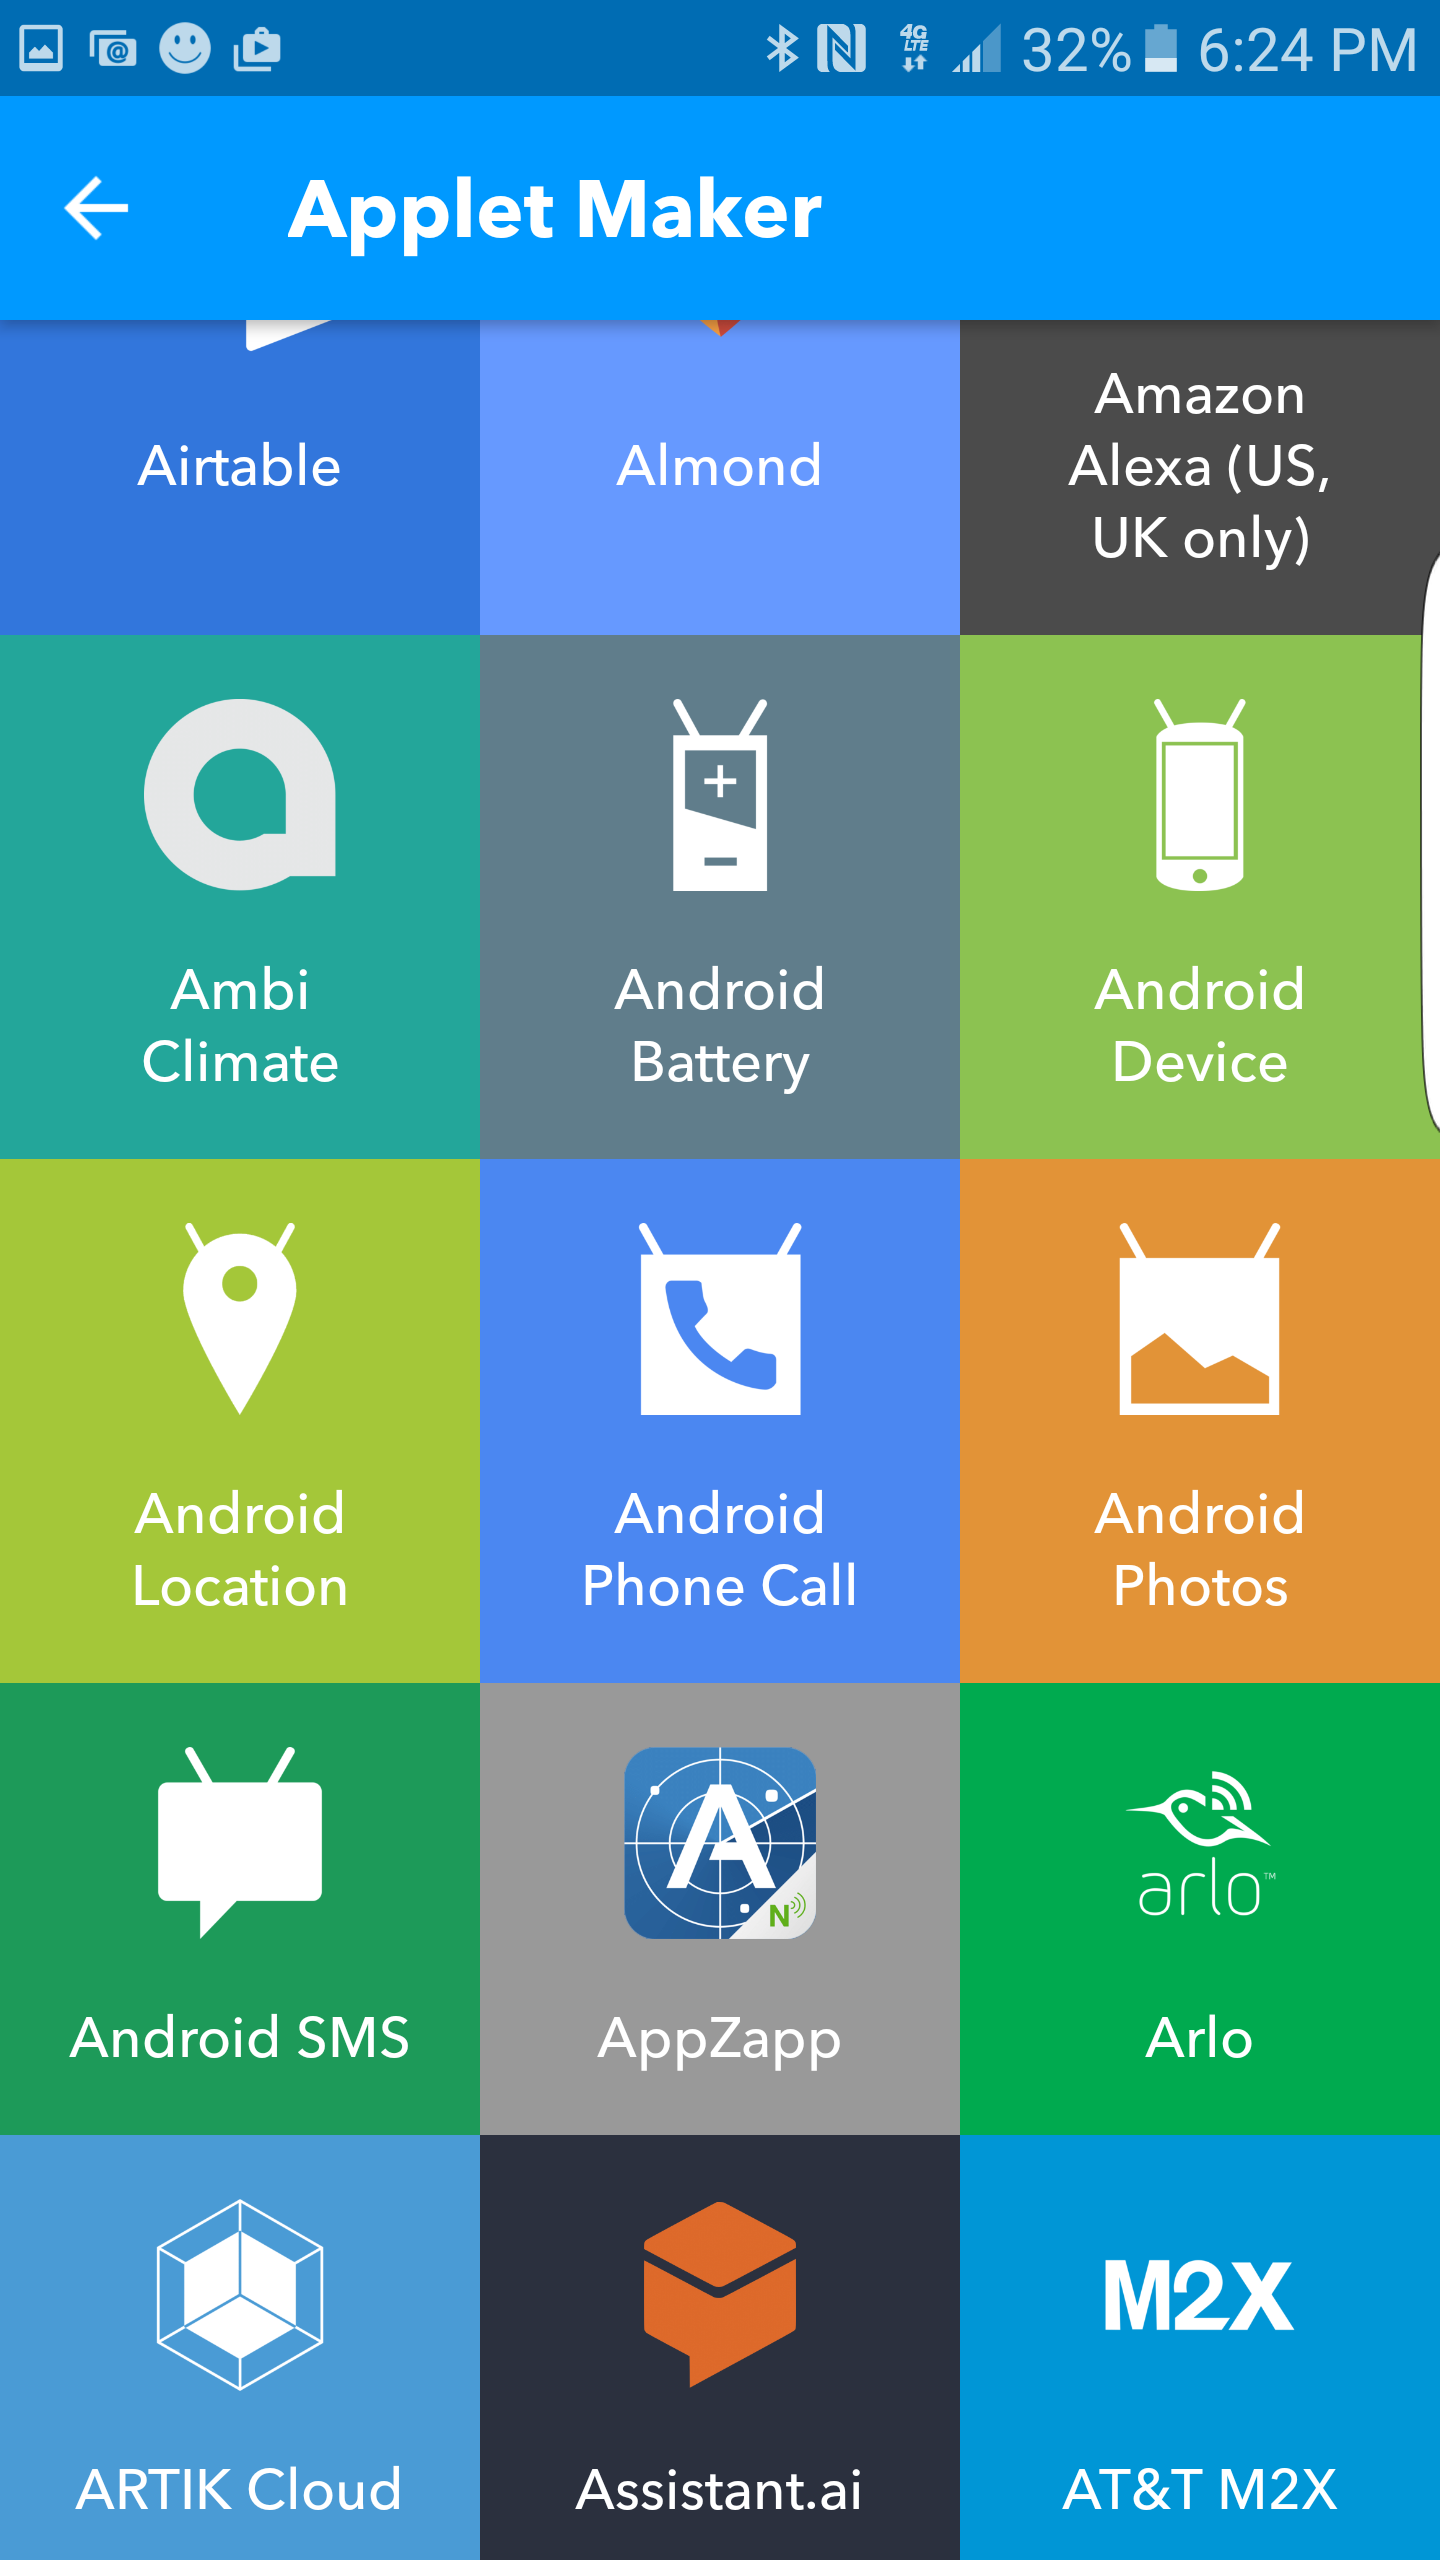 IFTTT - The App that Automates your Home and Life